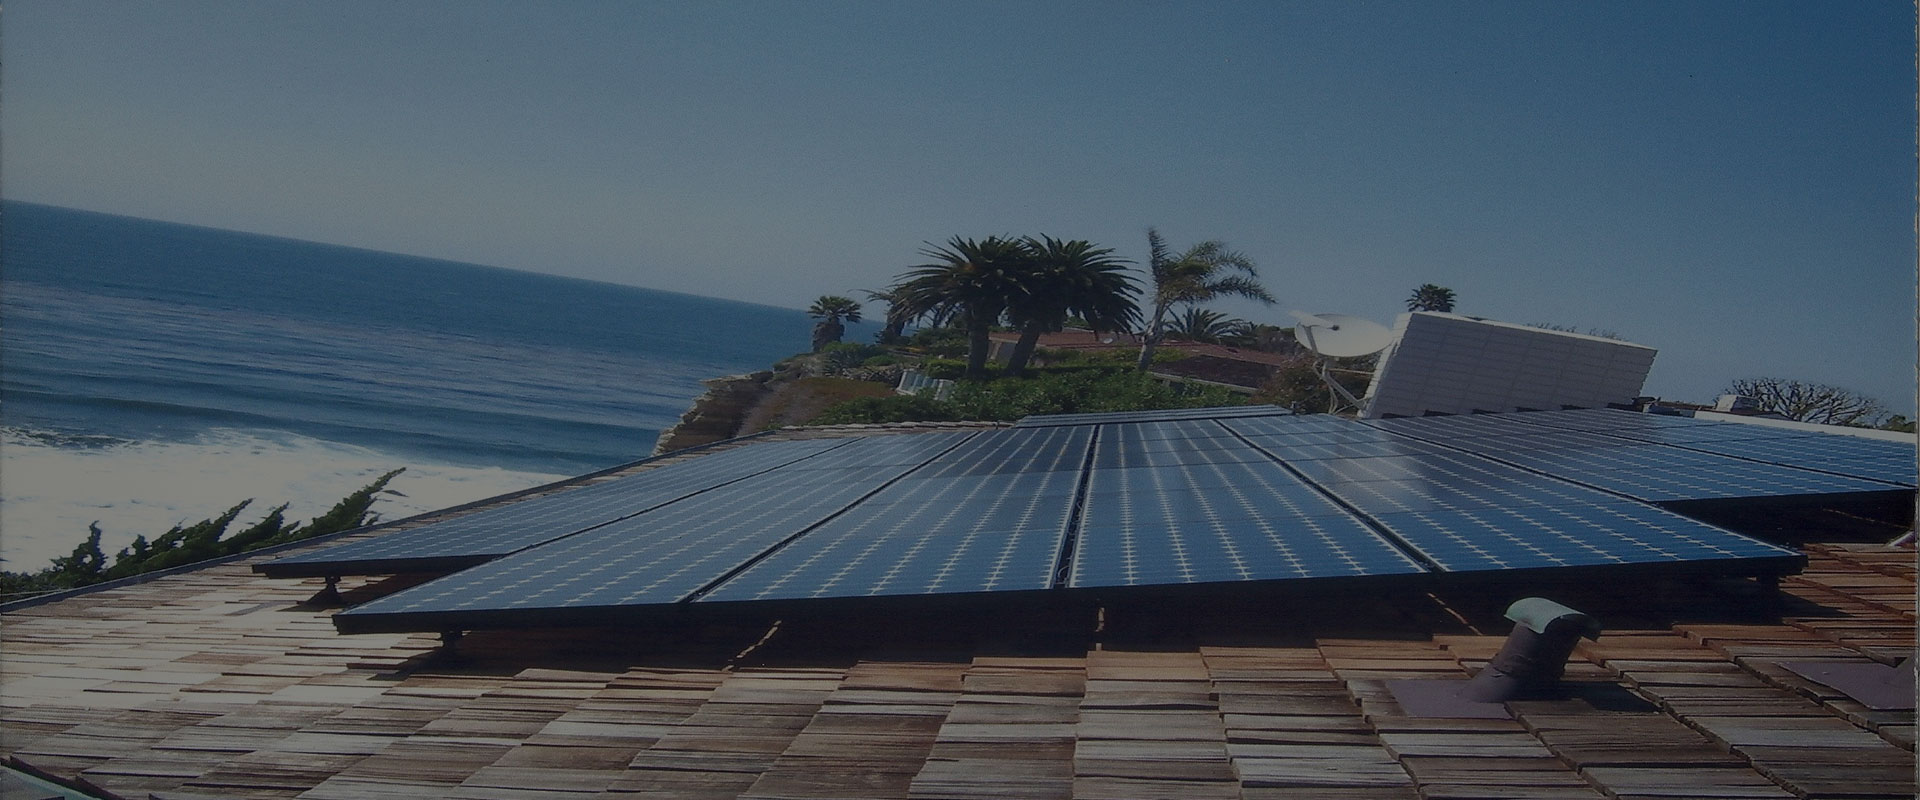 Solar Pannel on a Residental Roof